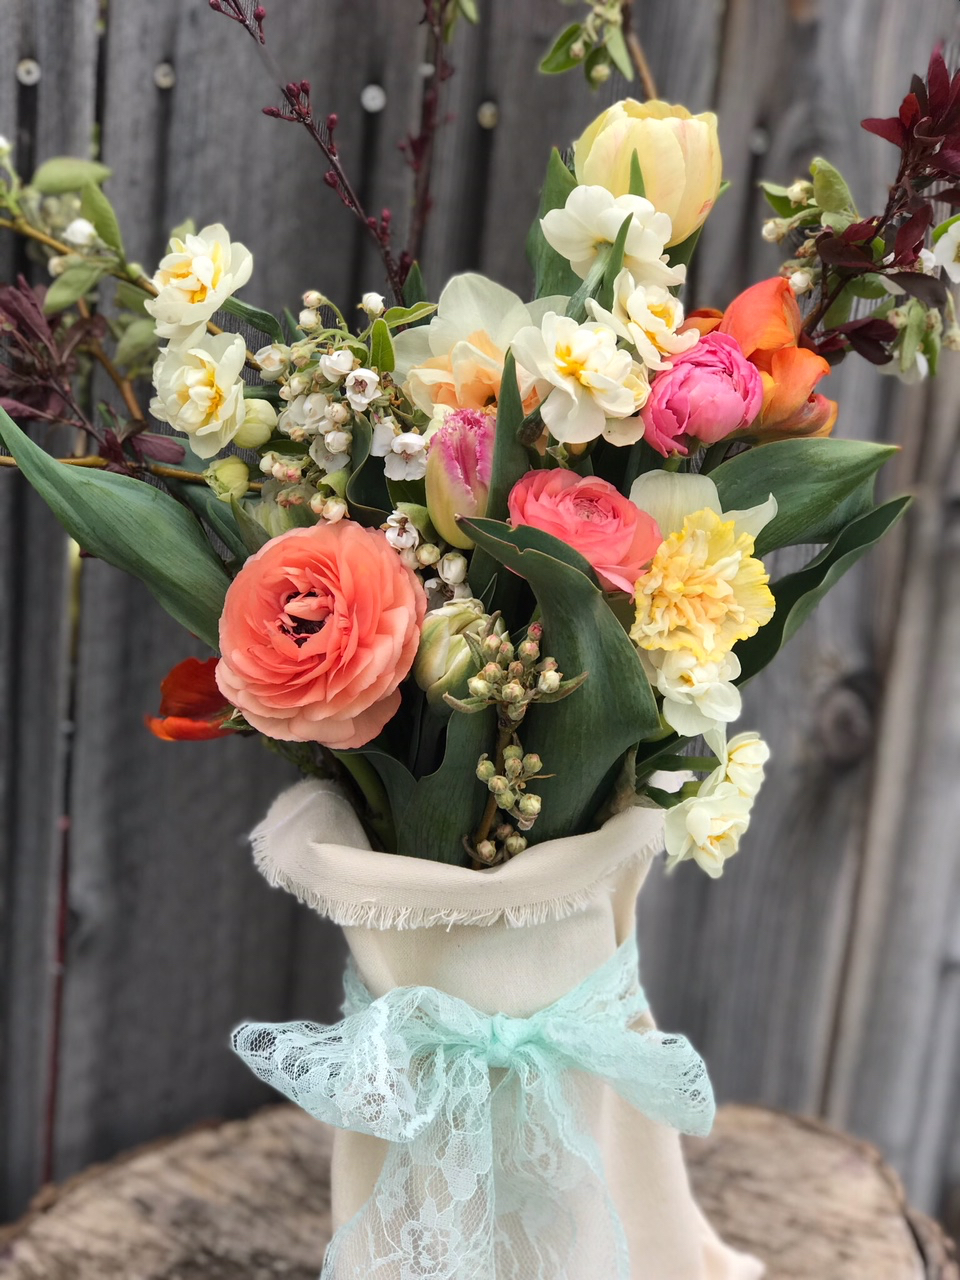 2018signaturebouquet.jpg